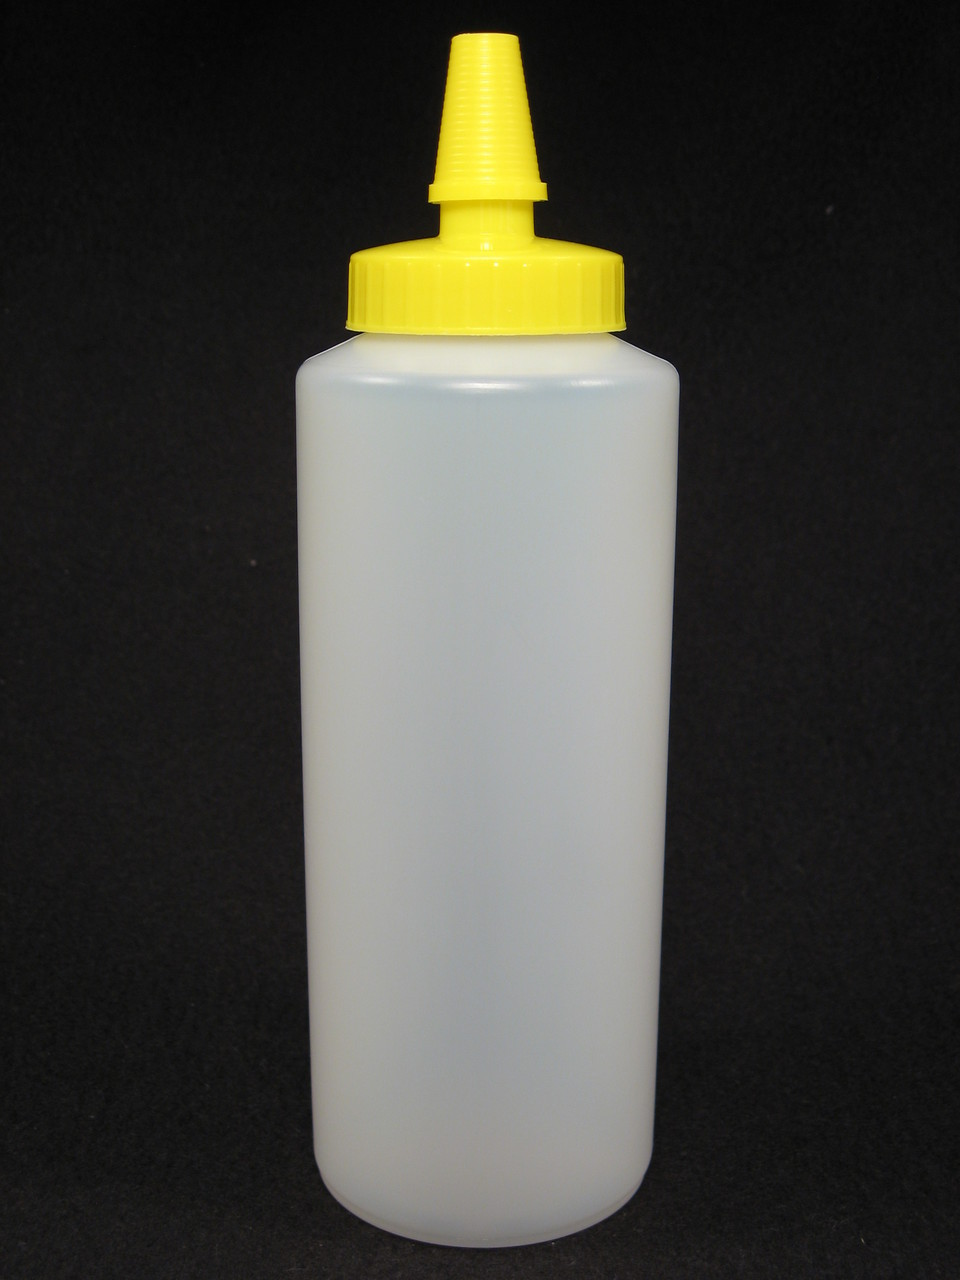 16 oz. Cylinder honey bottles - case of 300 with yellow hi-flo spouts